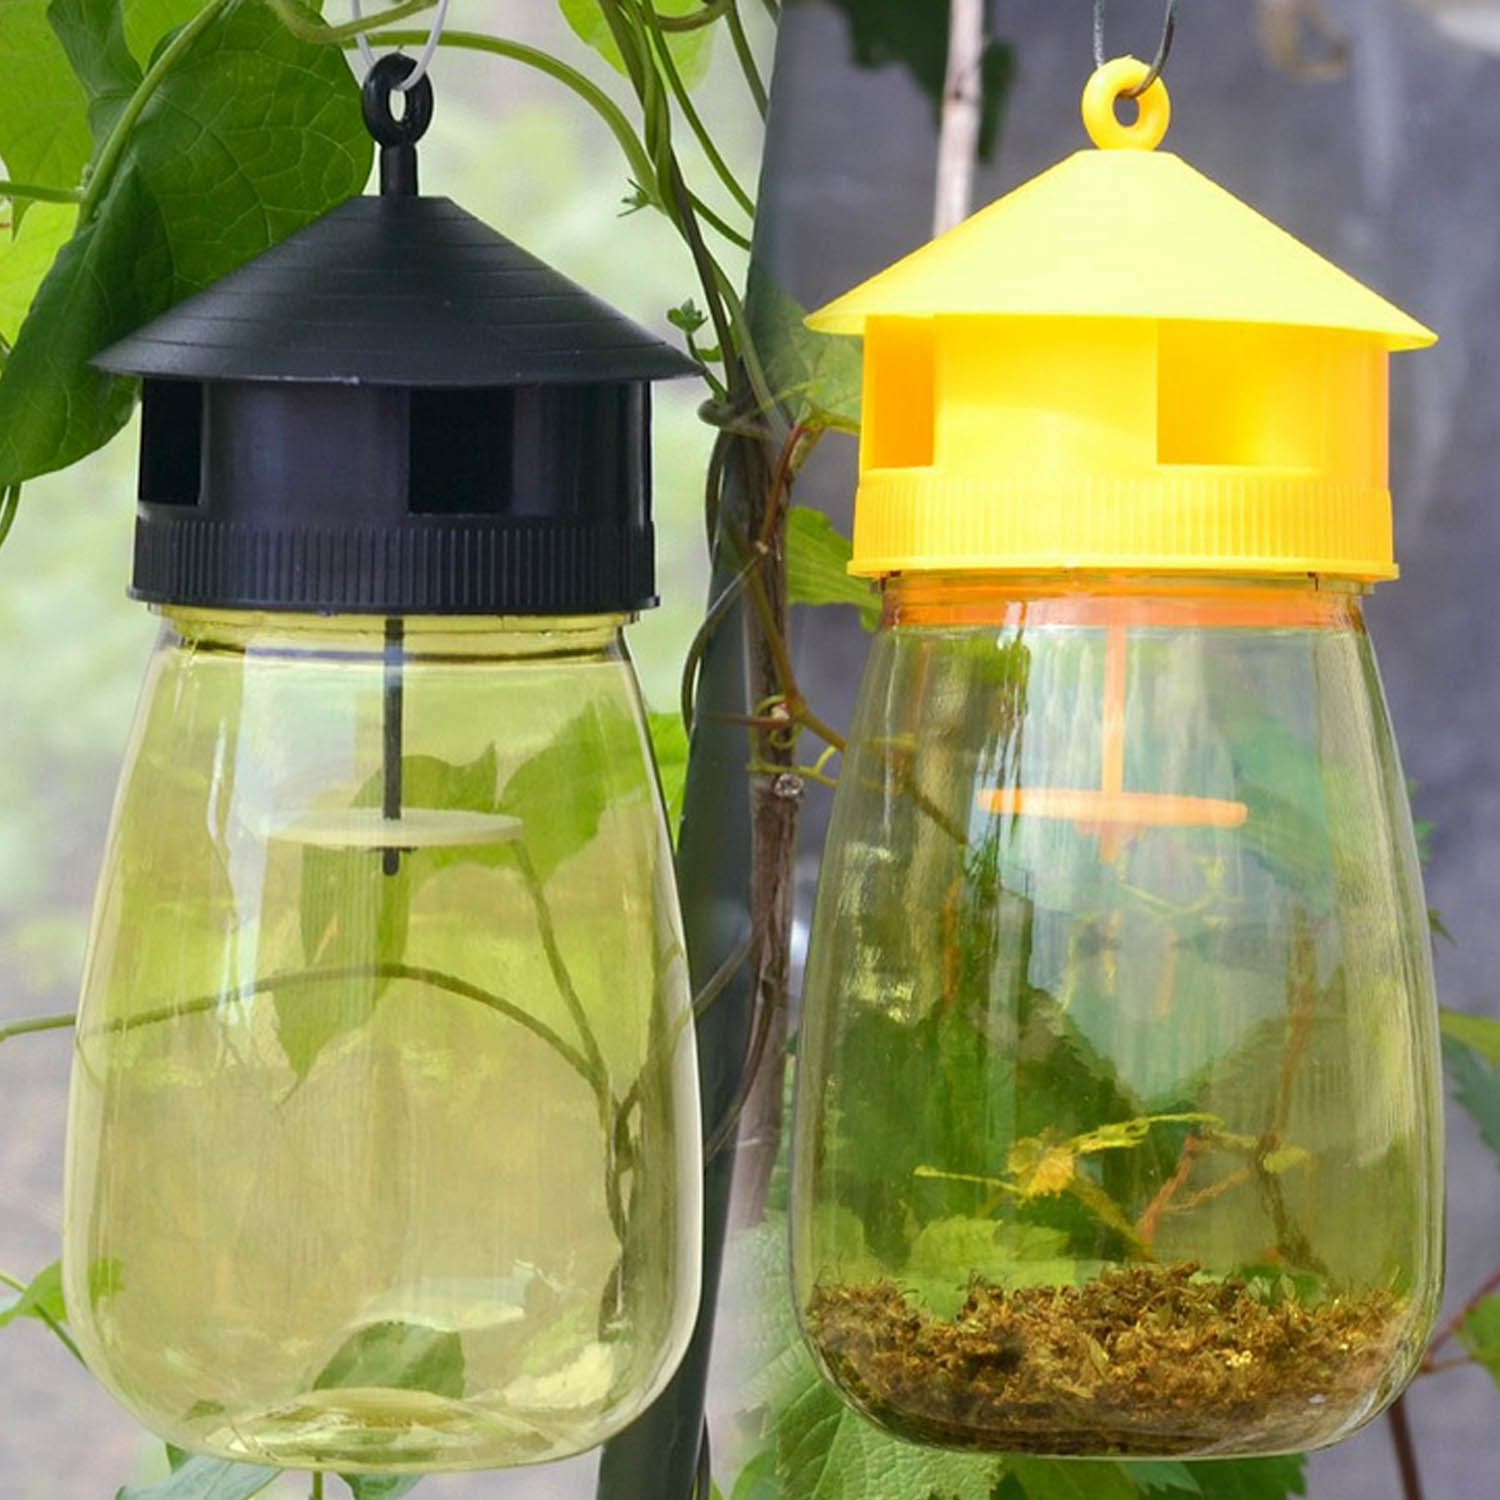 Behogar Fruit Fly Trap Catcher For Home Garden Patio Courtyard Orchard Fruits Vegetables Guava Carambola Mango Loofah Tomato